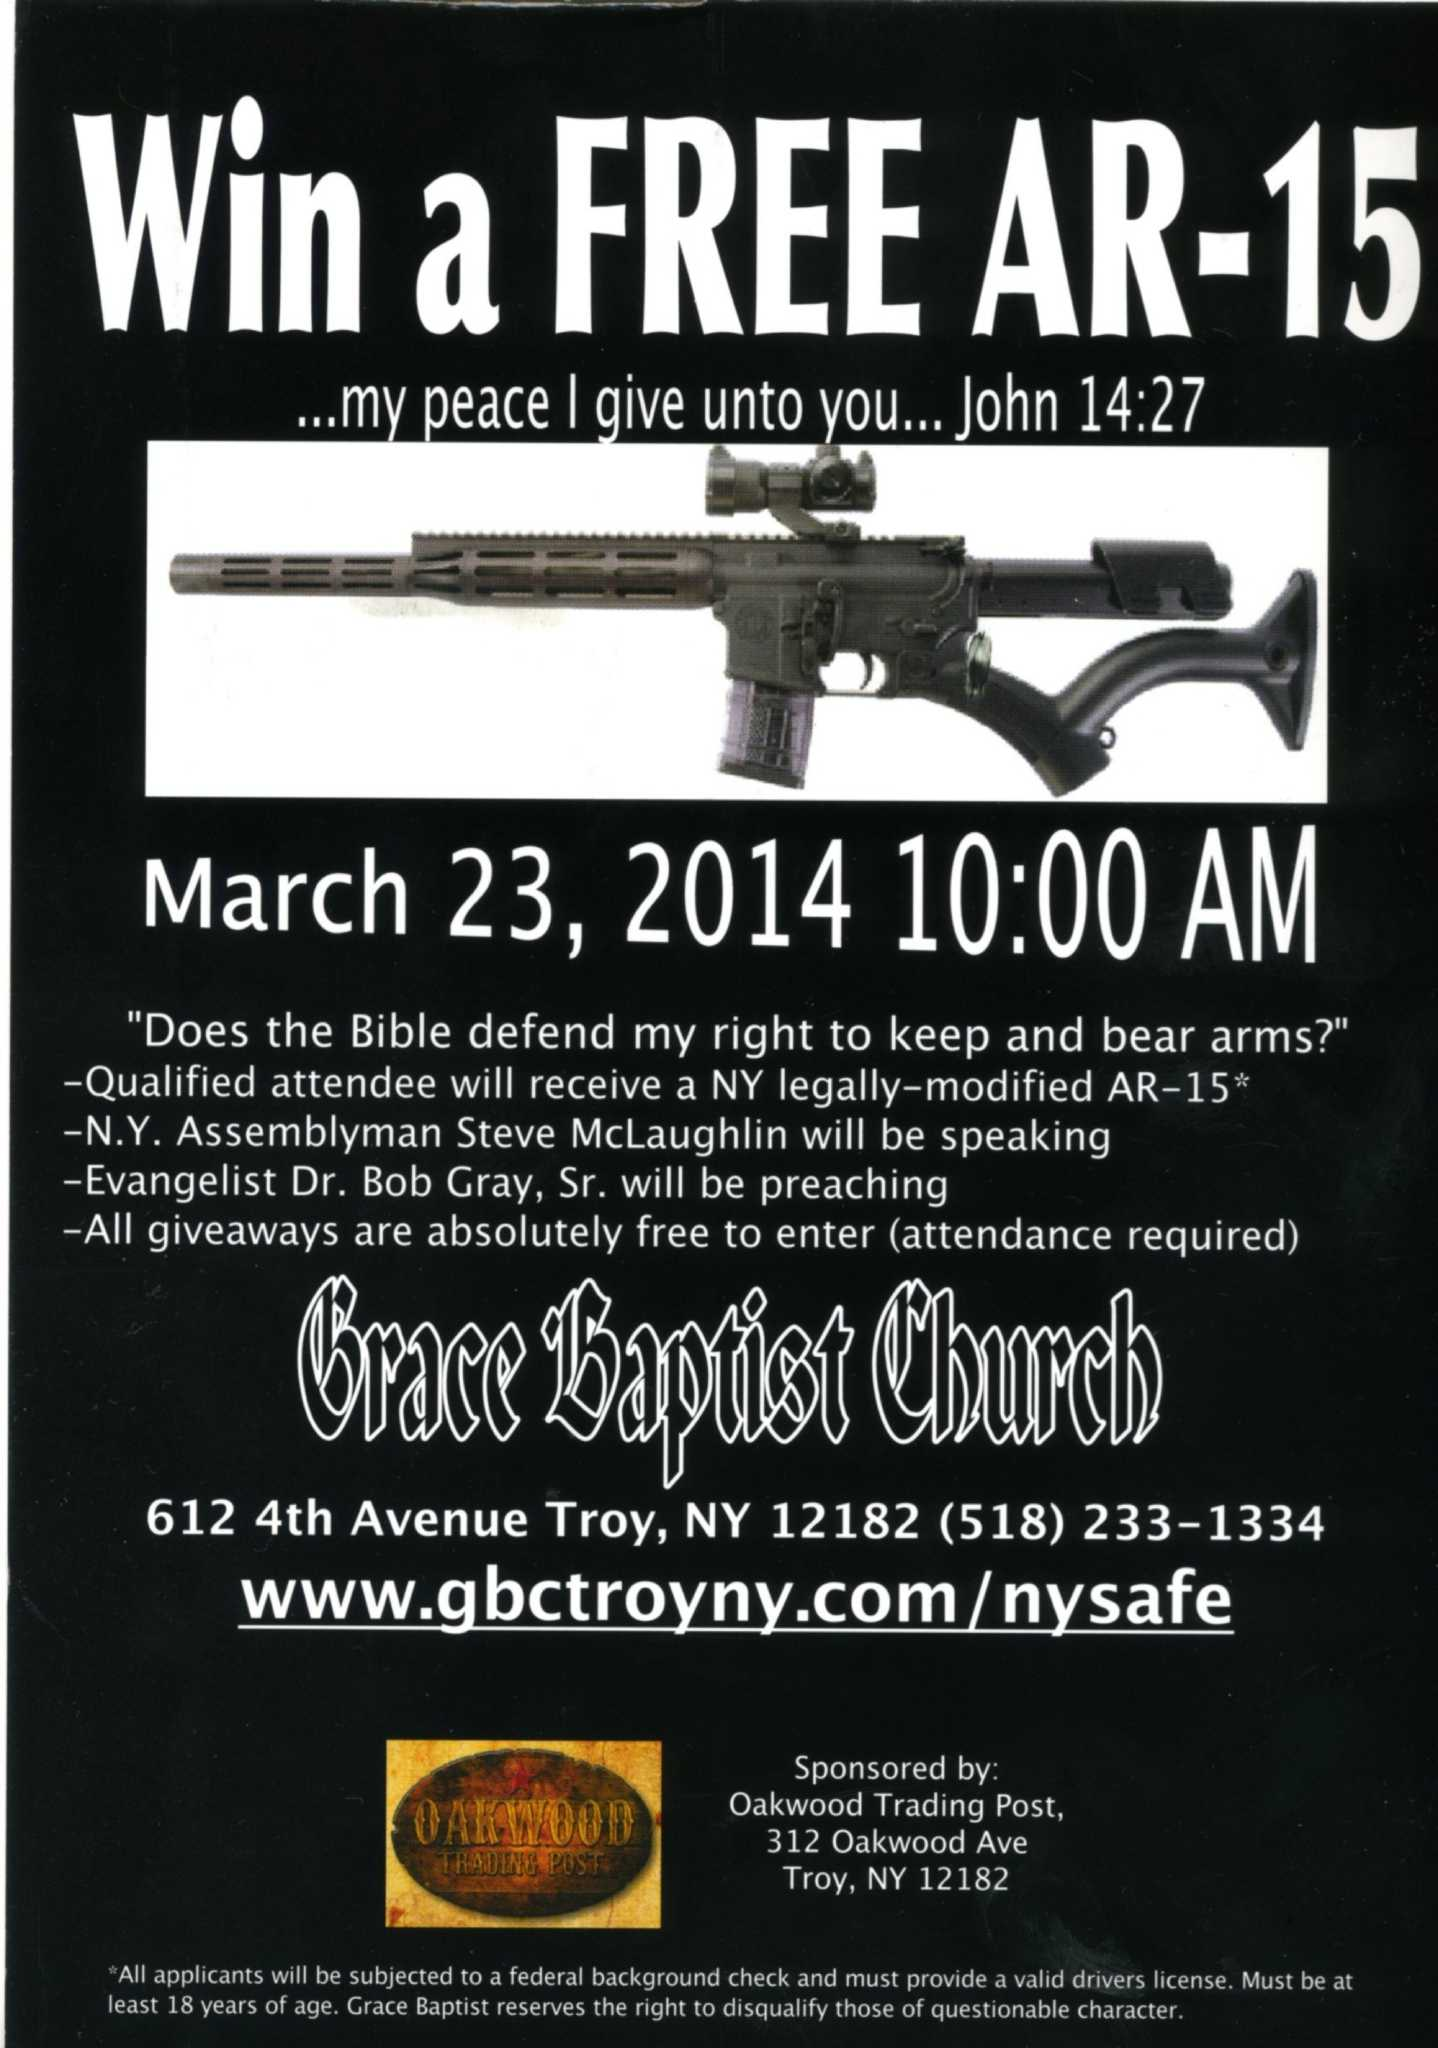 Troy pastor's AR-15 assault rifle giveaway creates controversy